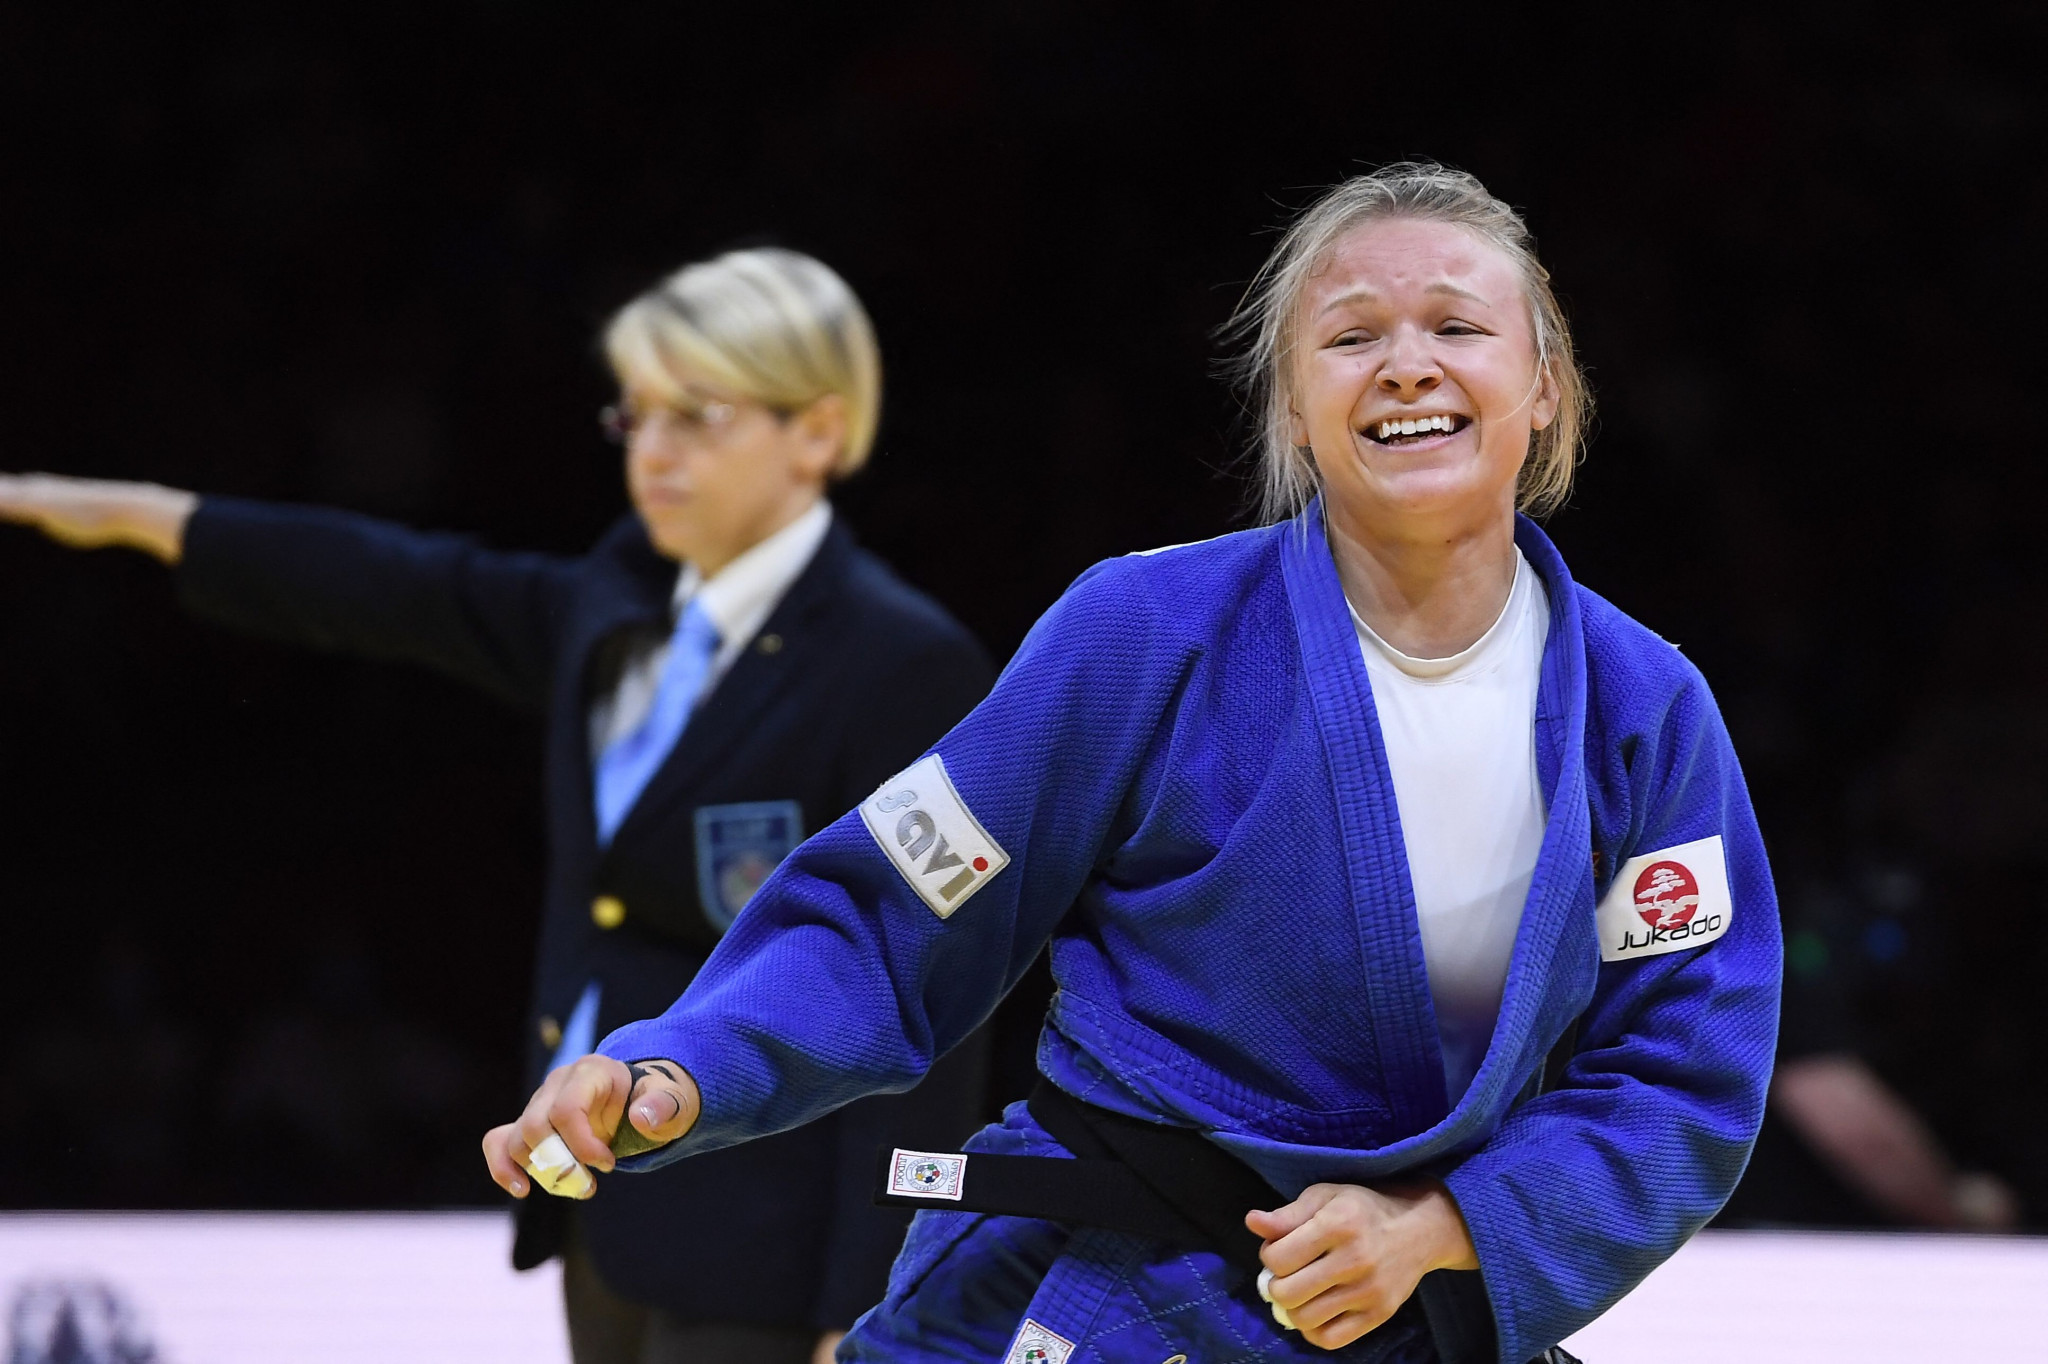 Klimkait secures Olympic place after taking Canadian rival's world judo crown